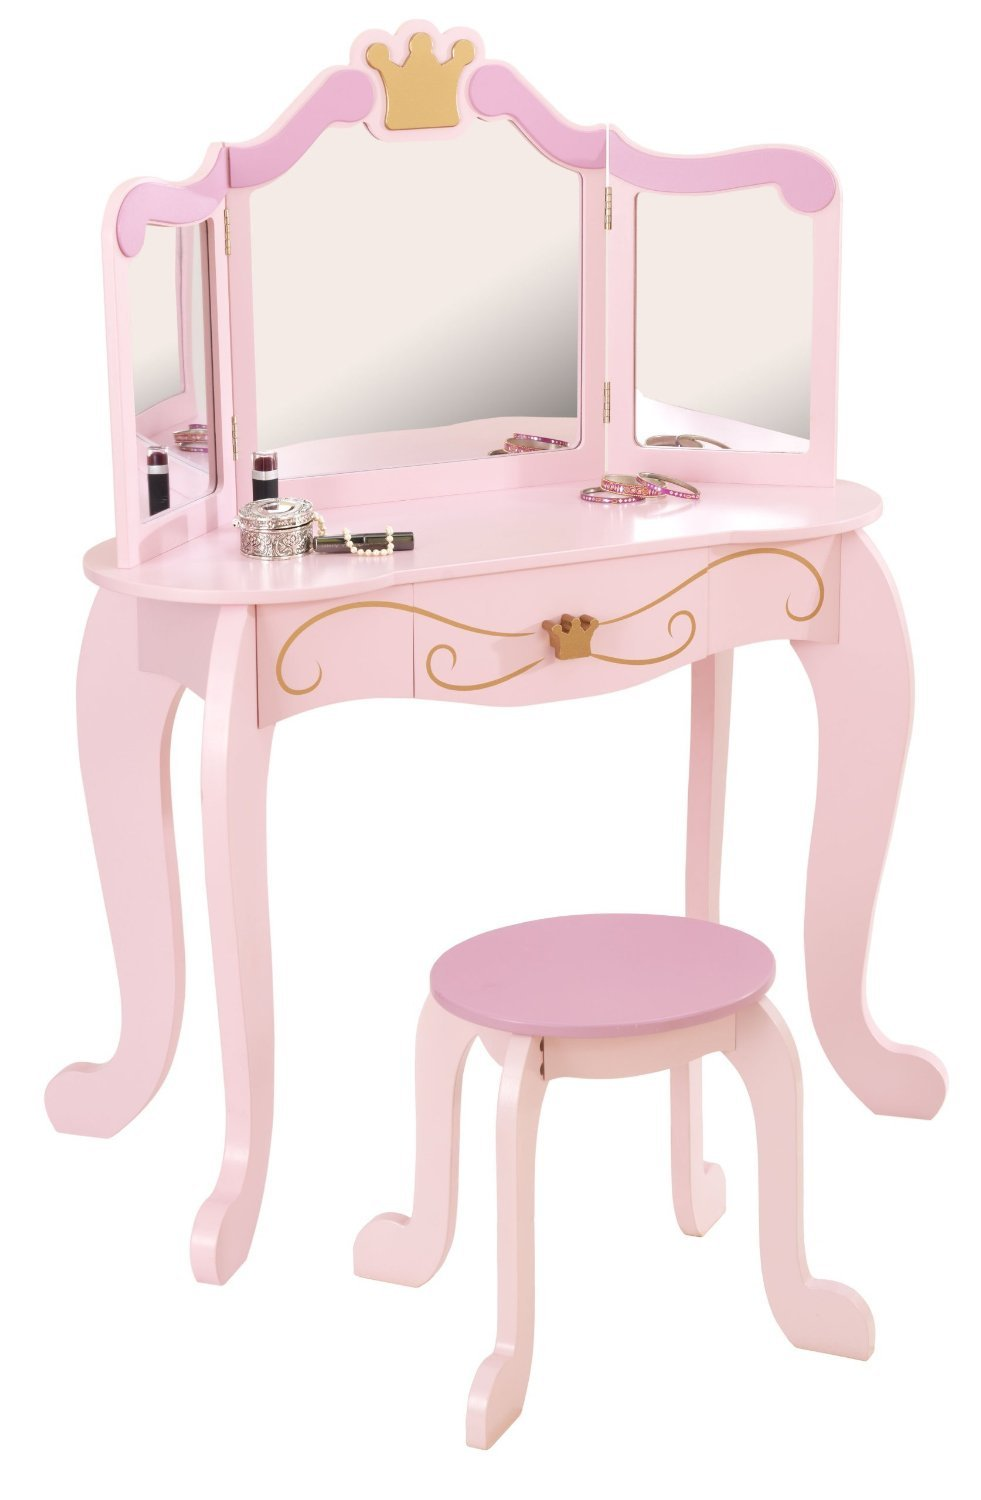 Kidkraft Princess 12.75'' Pink Mirrored Vanity Table with Drawer and Bonus Stool Set for Your Children to Enjoy! This Princess Kids Diva Table and Stool Gives Every Little Princess the Perfect Place to Prepare for Each Day.